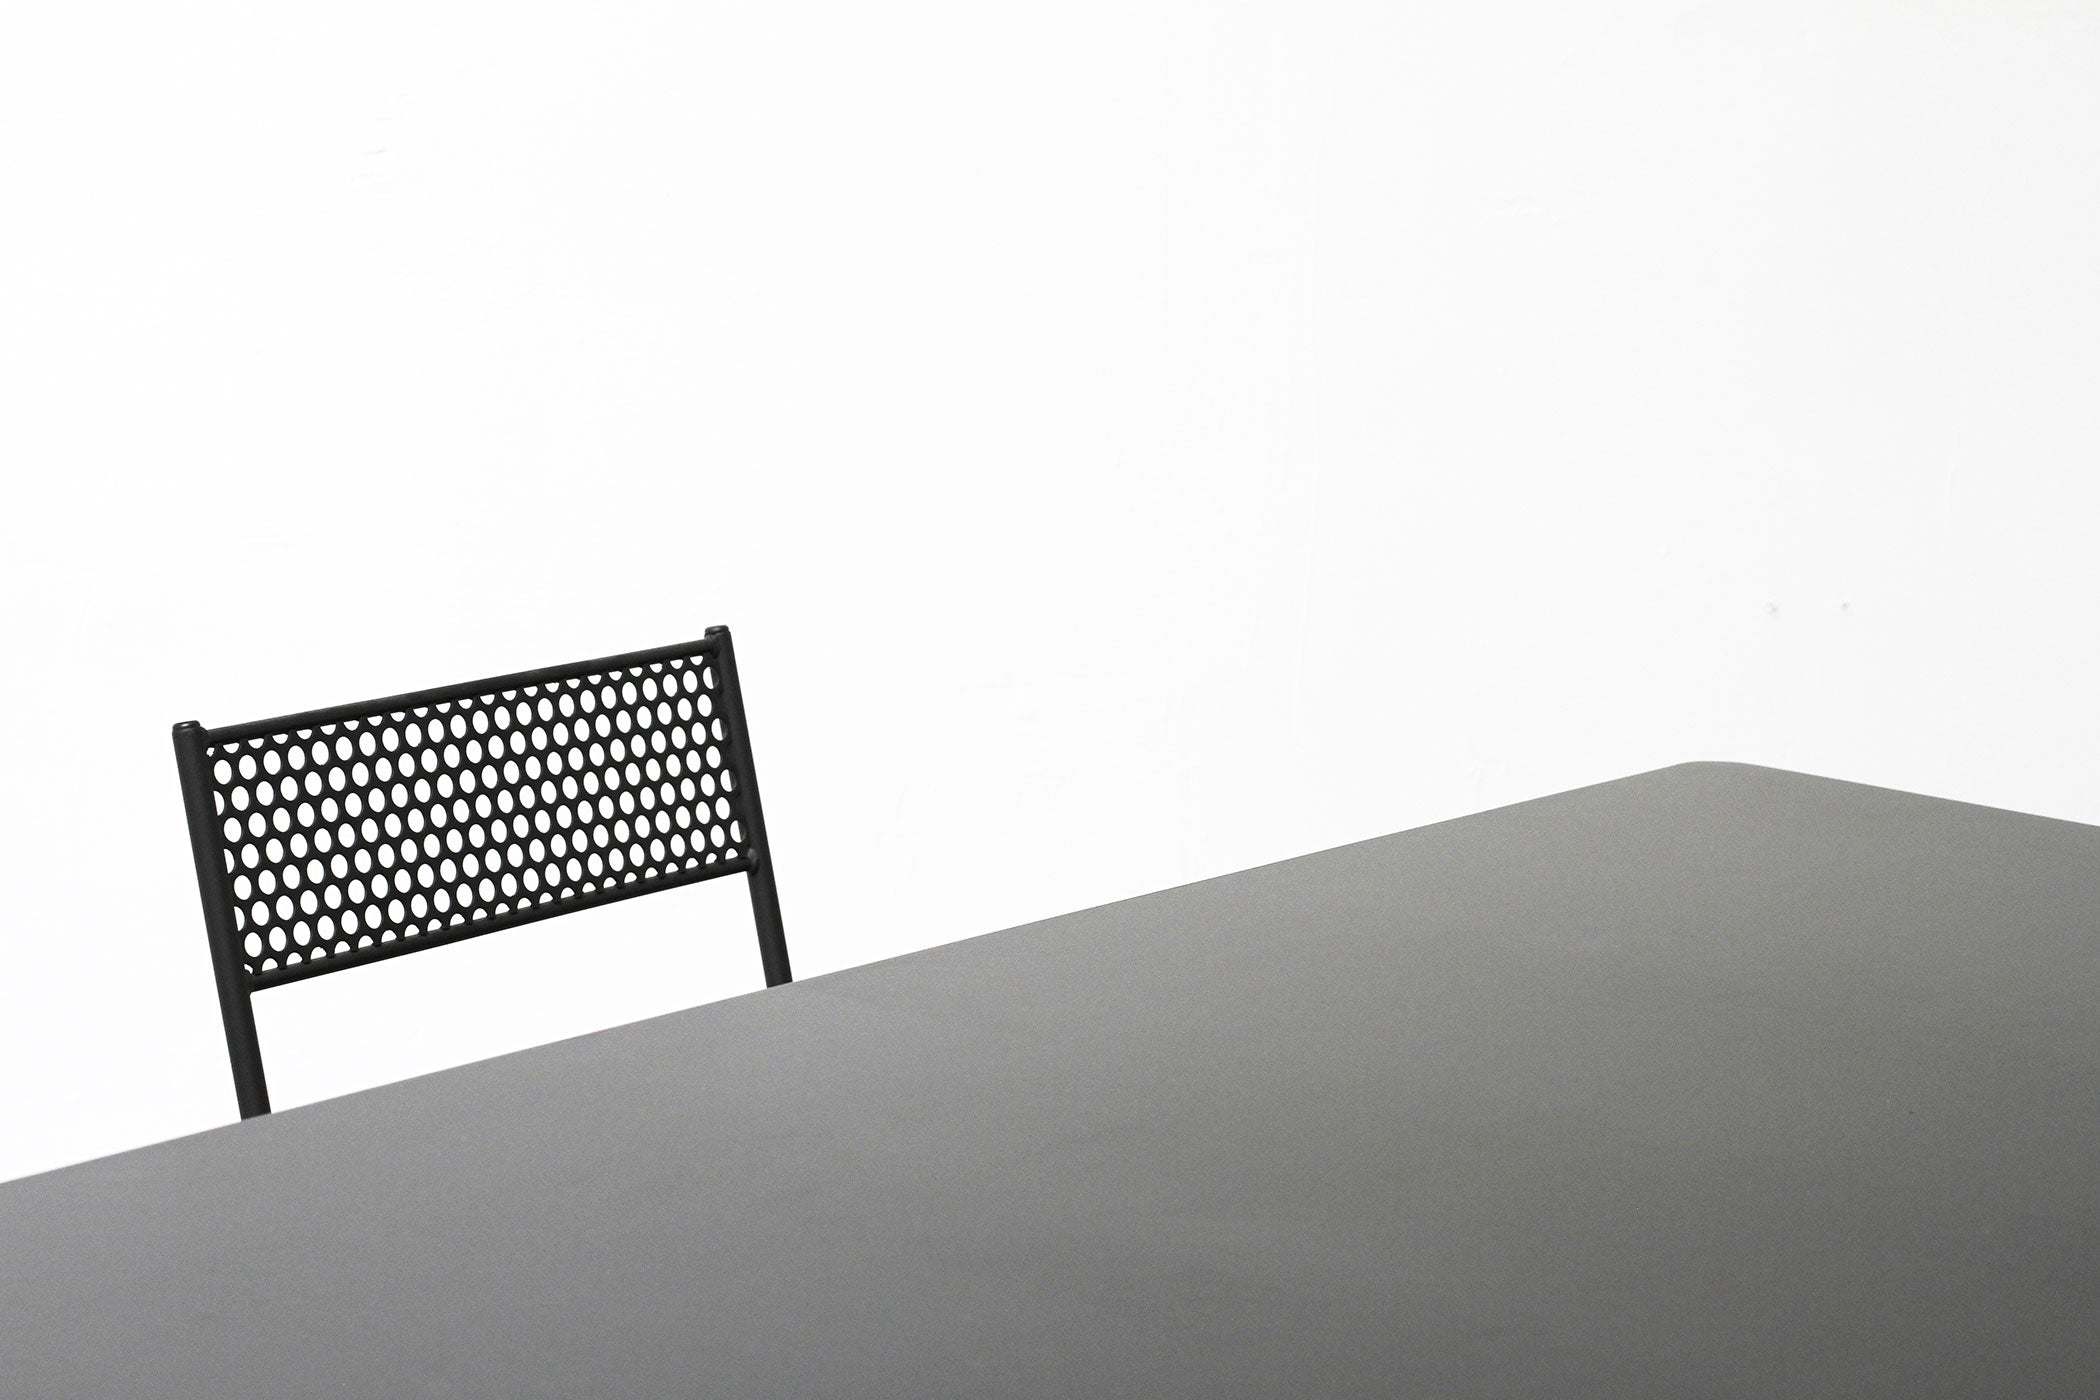 RAD Furniture's Solid Steel-top Dining Table and Perforated Cafe Chair